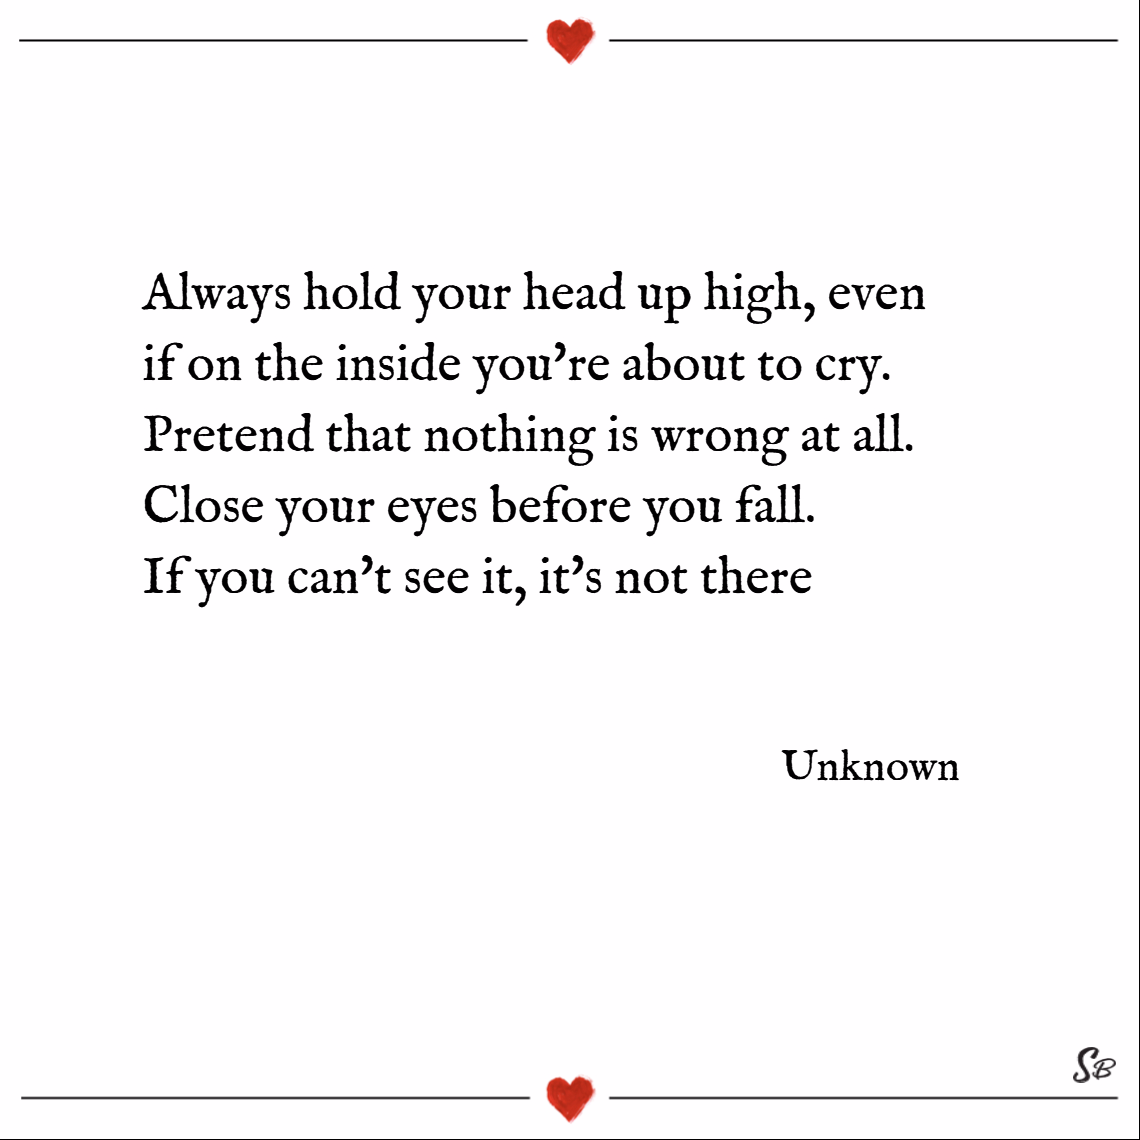 Always hold your head up high, even if on the inside you're about to cry. pretend that nothing is wrong at all. close your eyes before you fall. if you can't see it, it's not there. – unknown